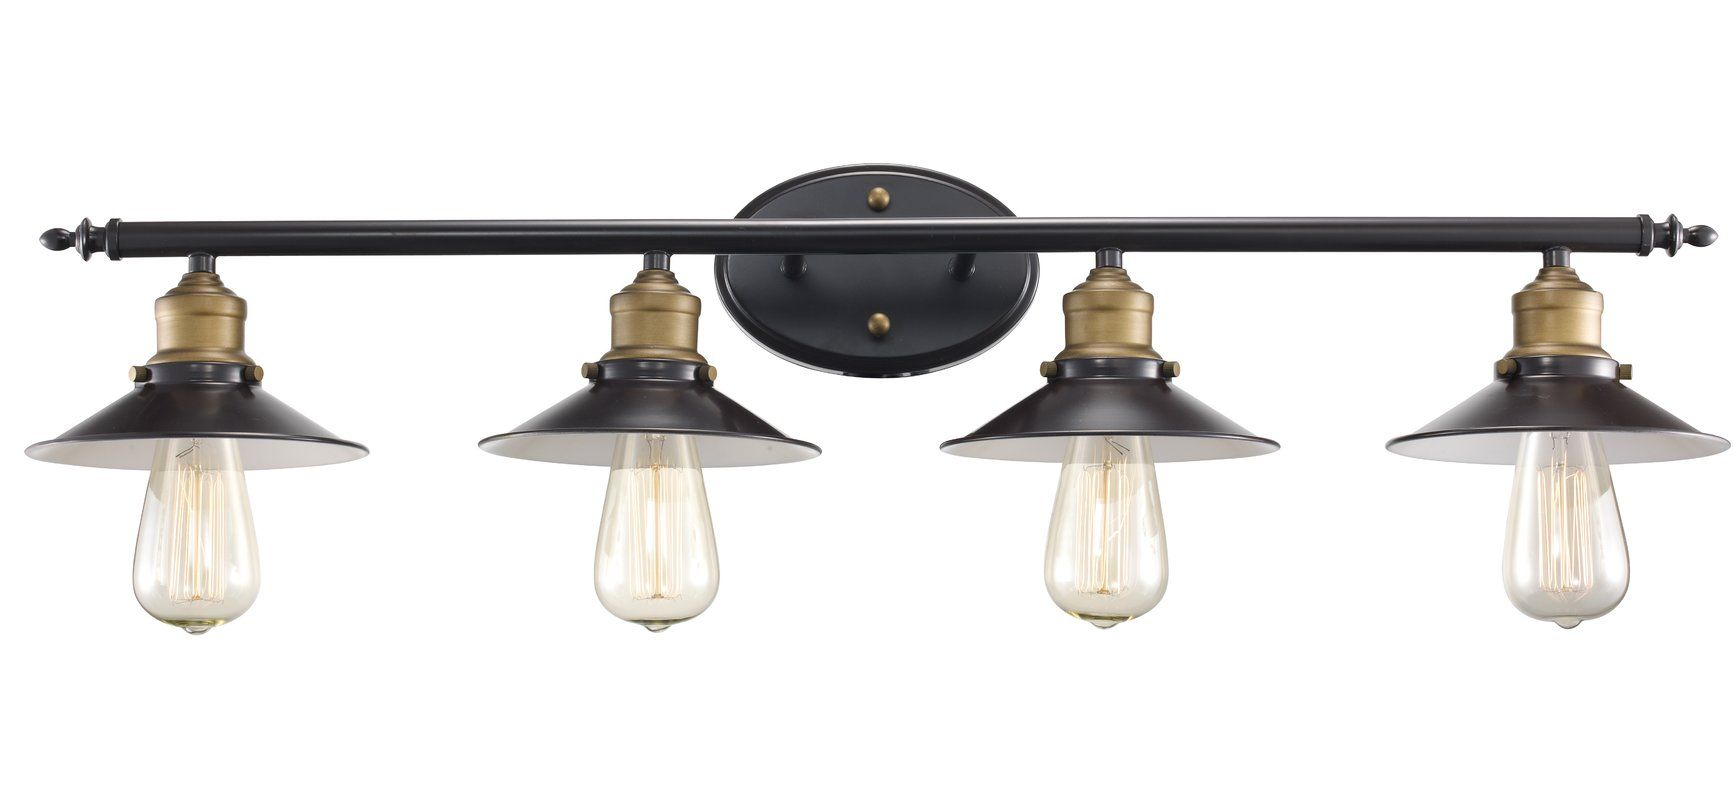 Baden Powell 4 Light Vanity Light In 2019 Vanity